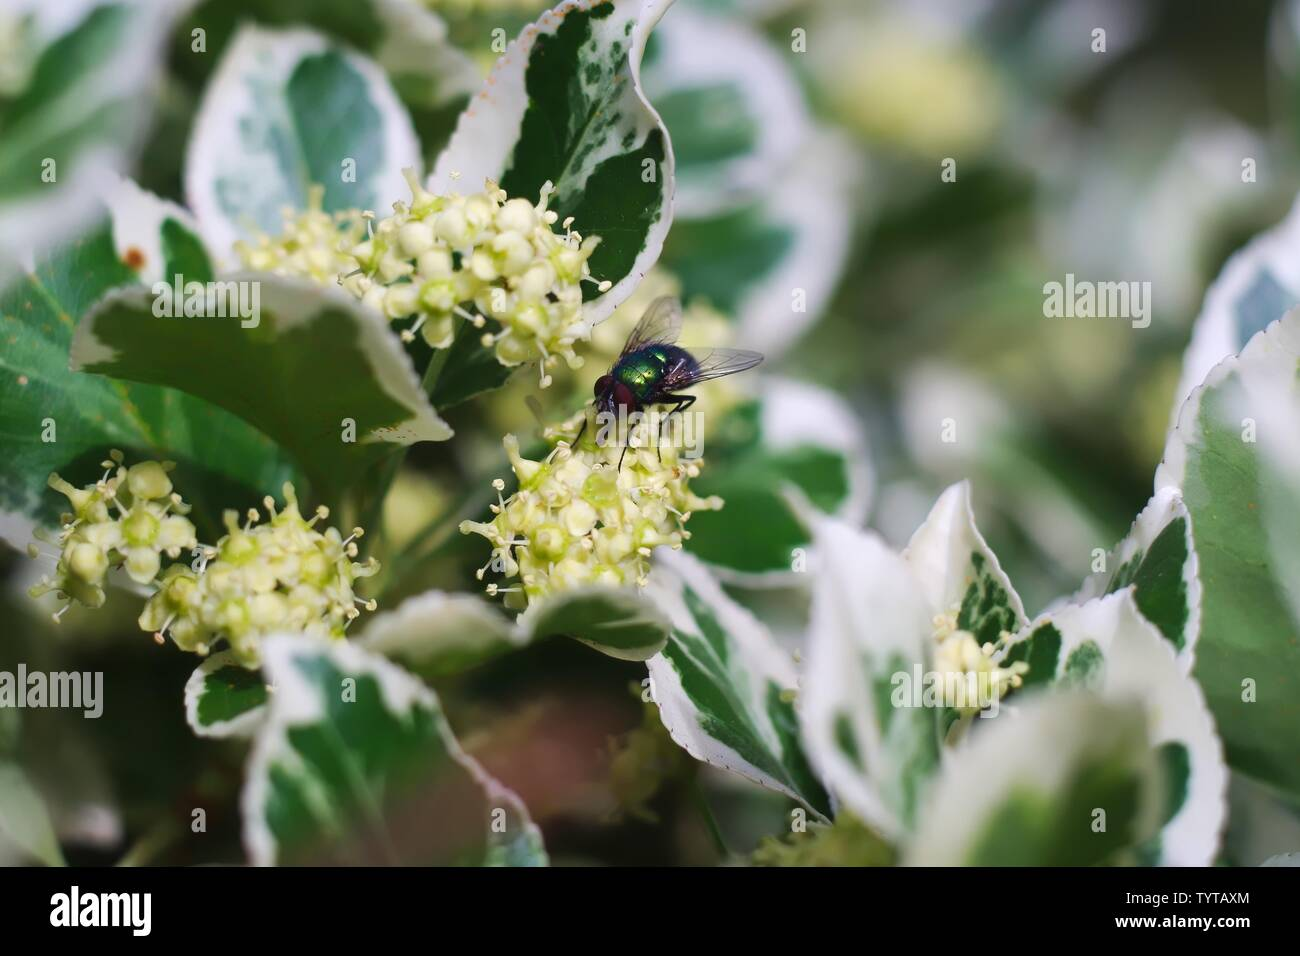 Green Bottle Fly on Japanese Spindle Tree in Maidenhead Berkshire UK - Stock Image